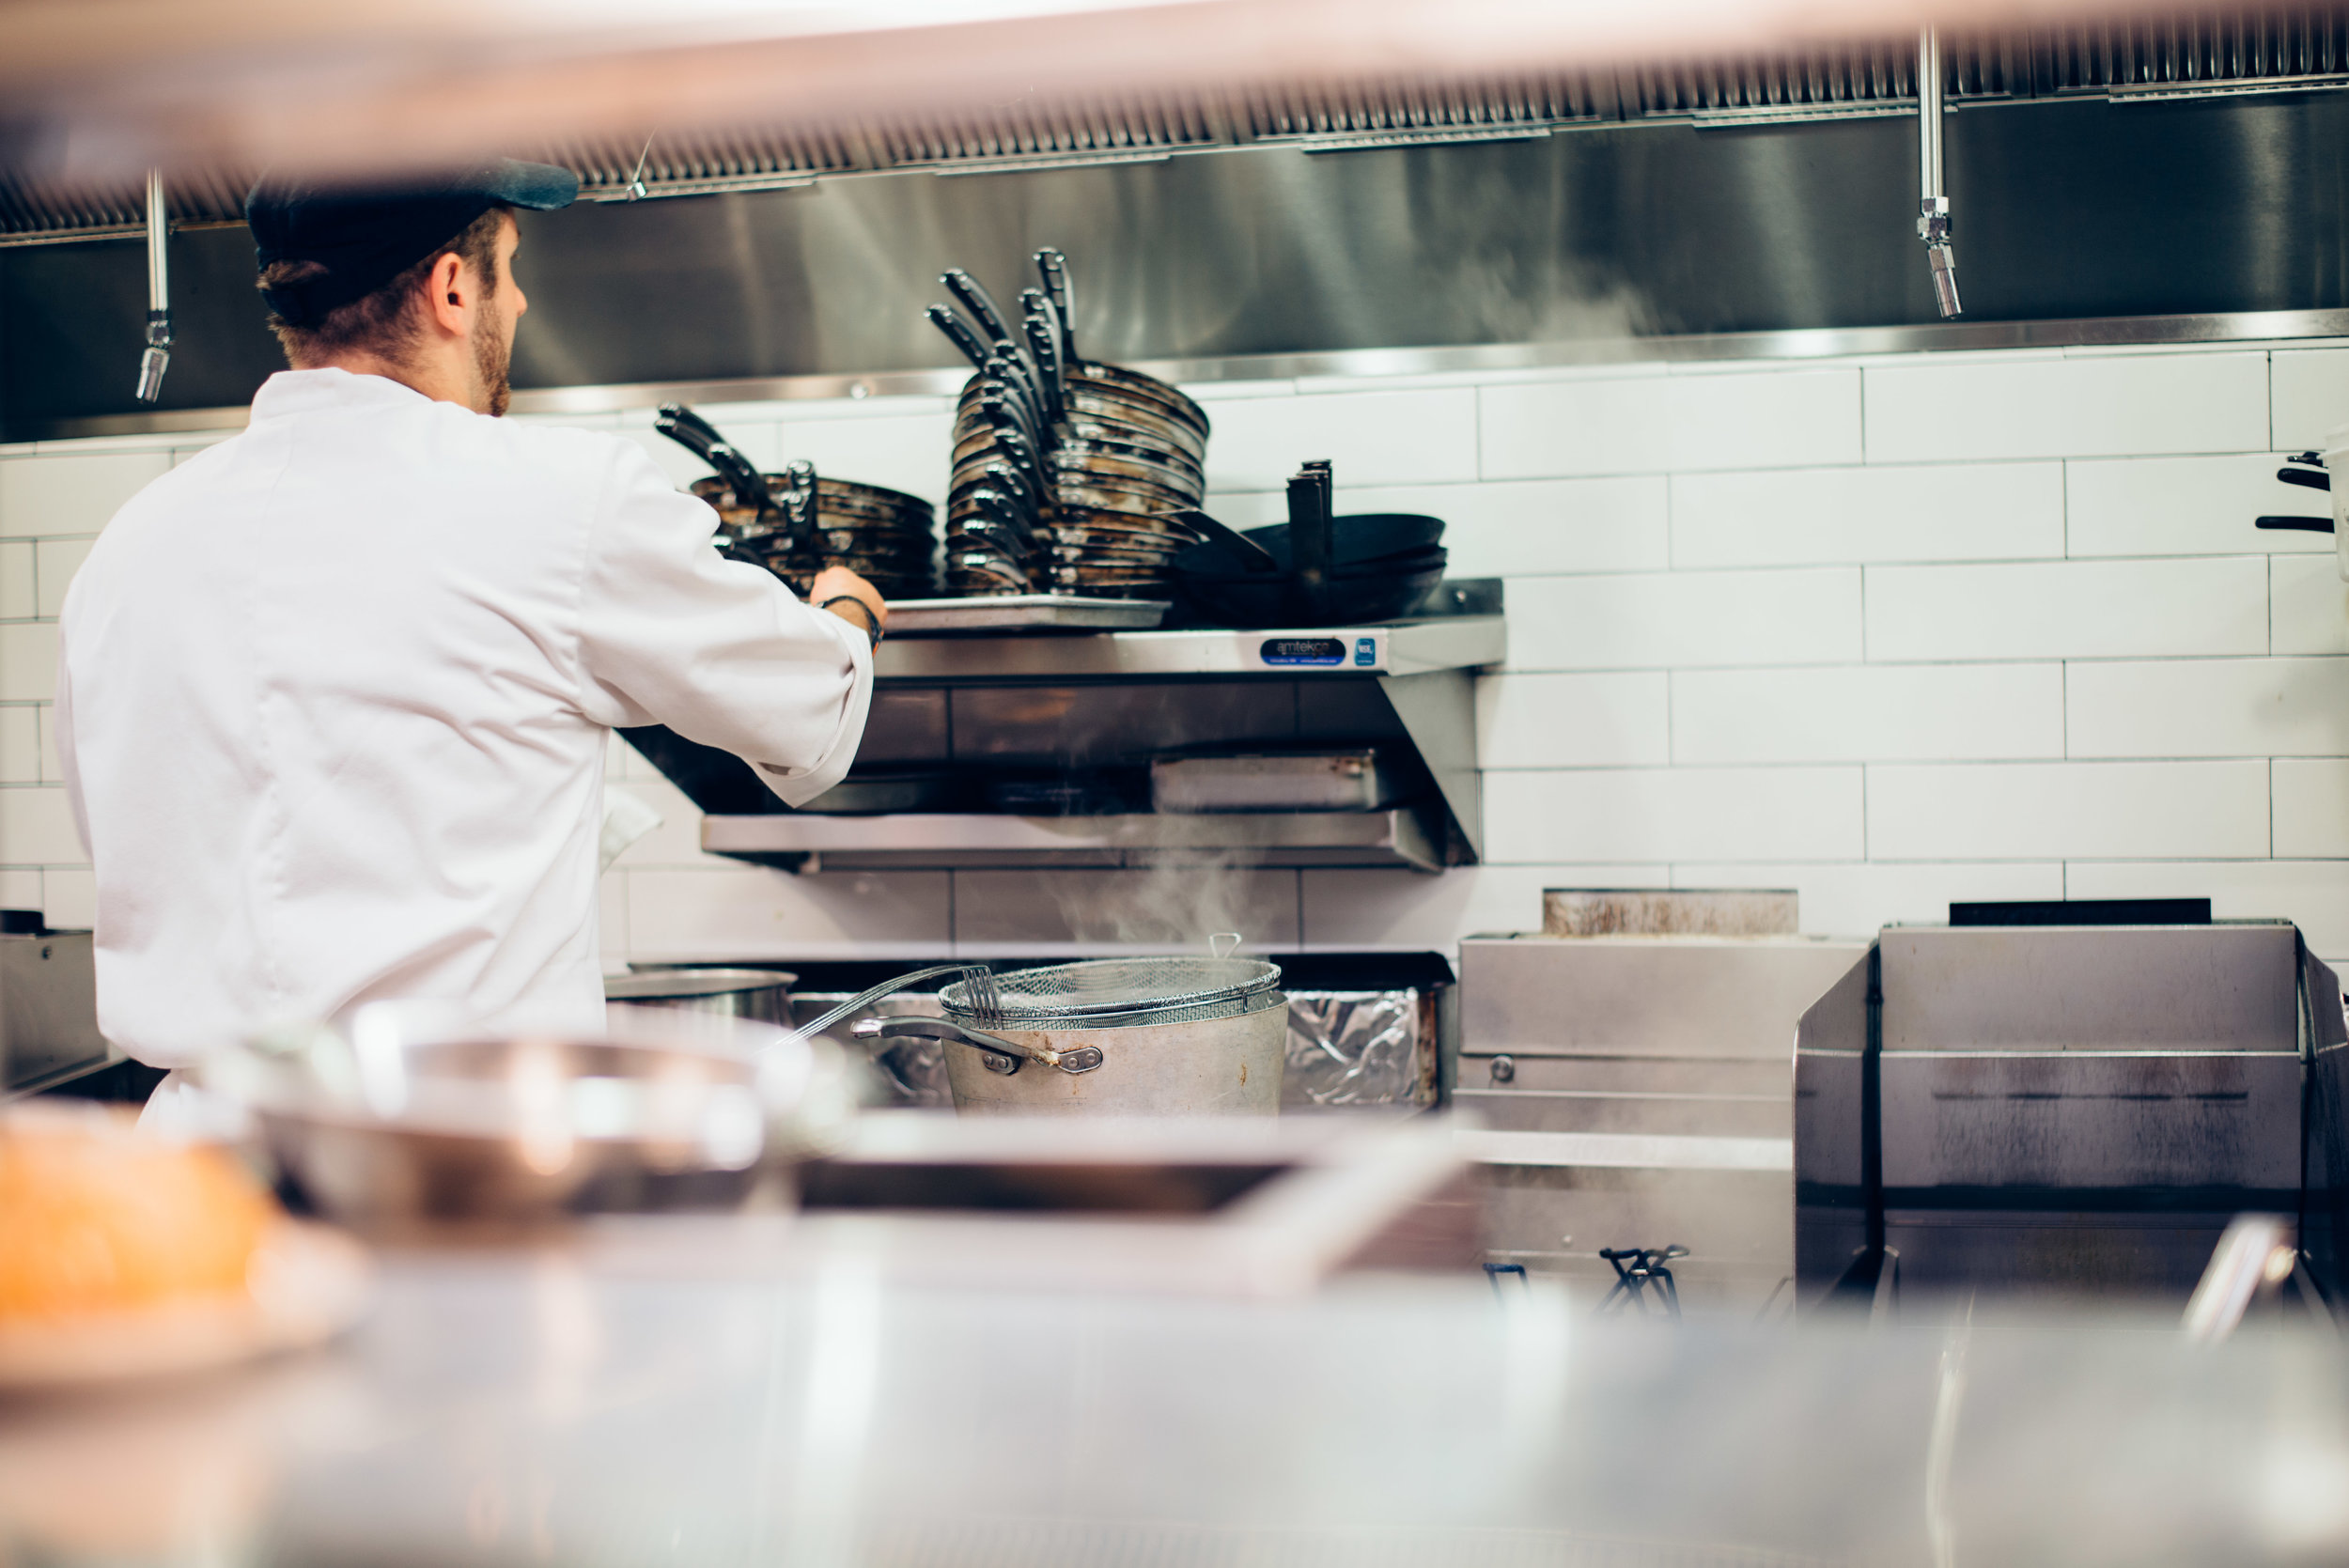 Chef in Kitchen at The Guild House Restaurant in Columbus, Ohio